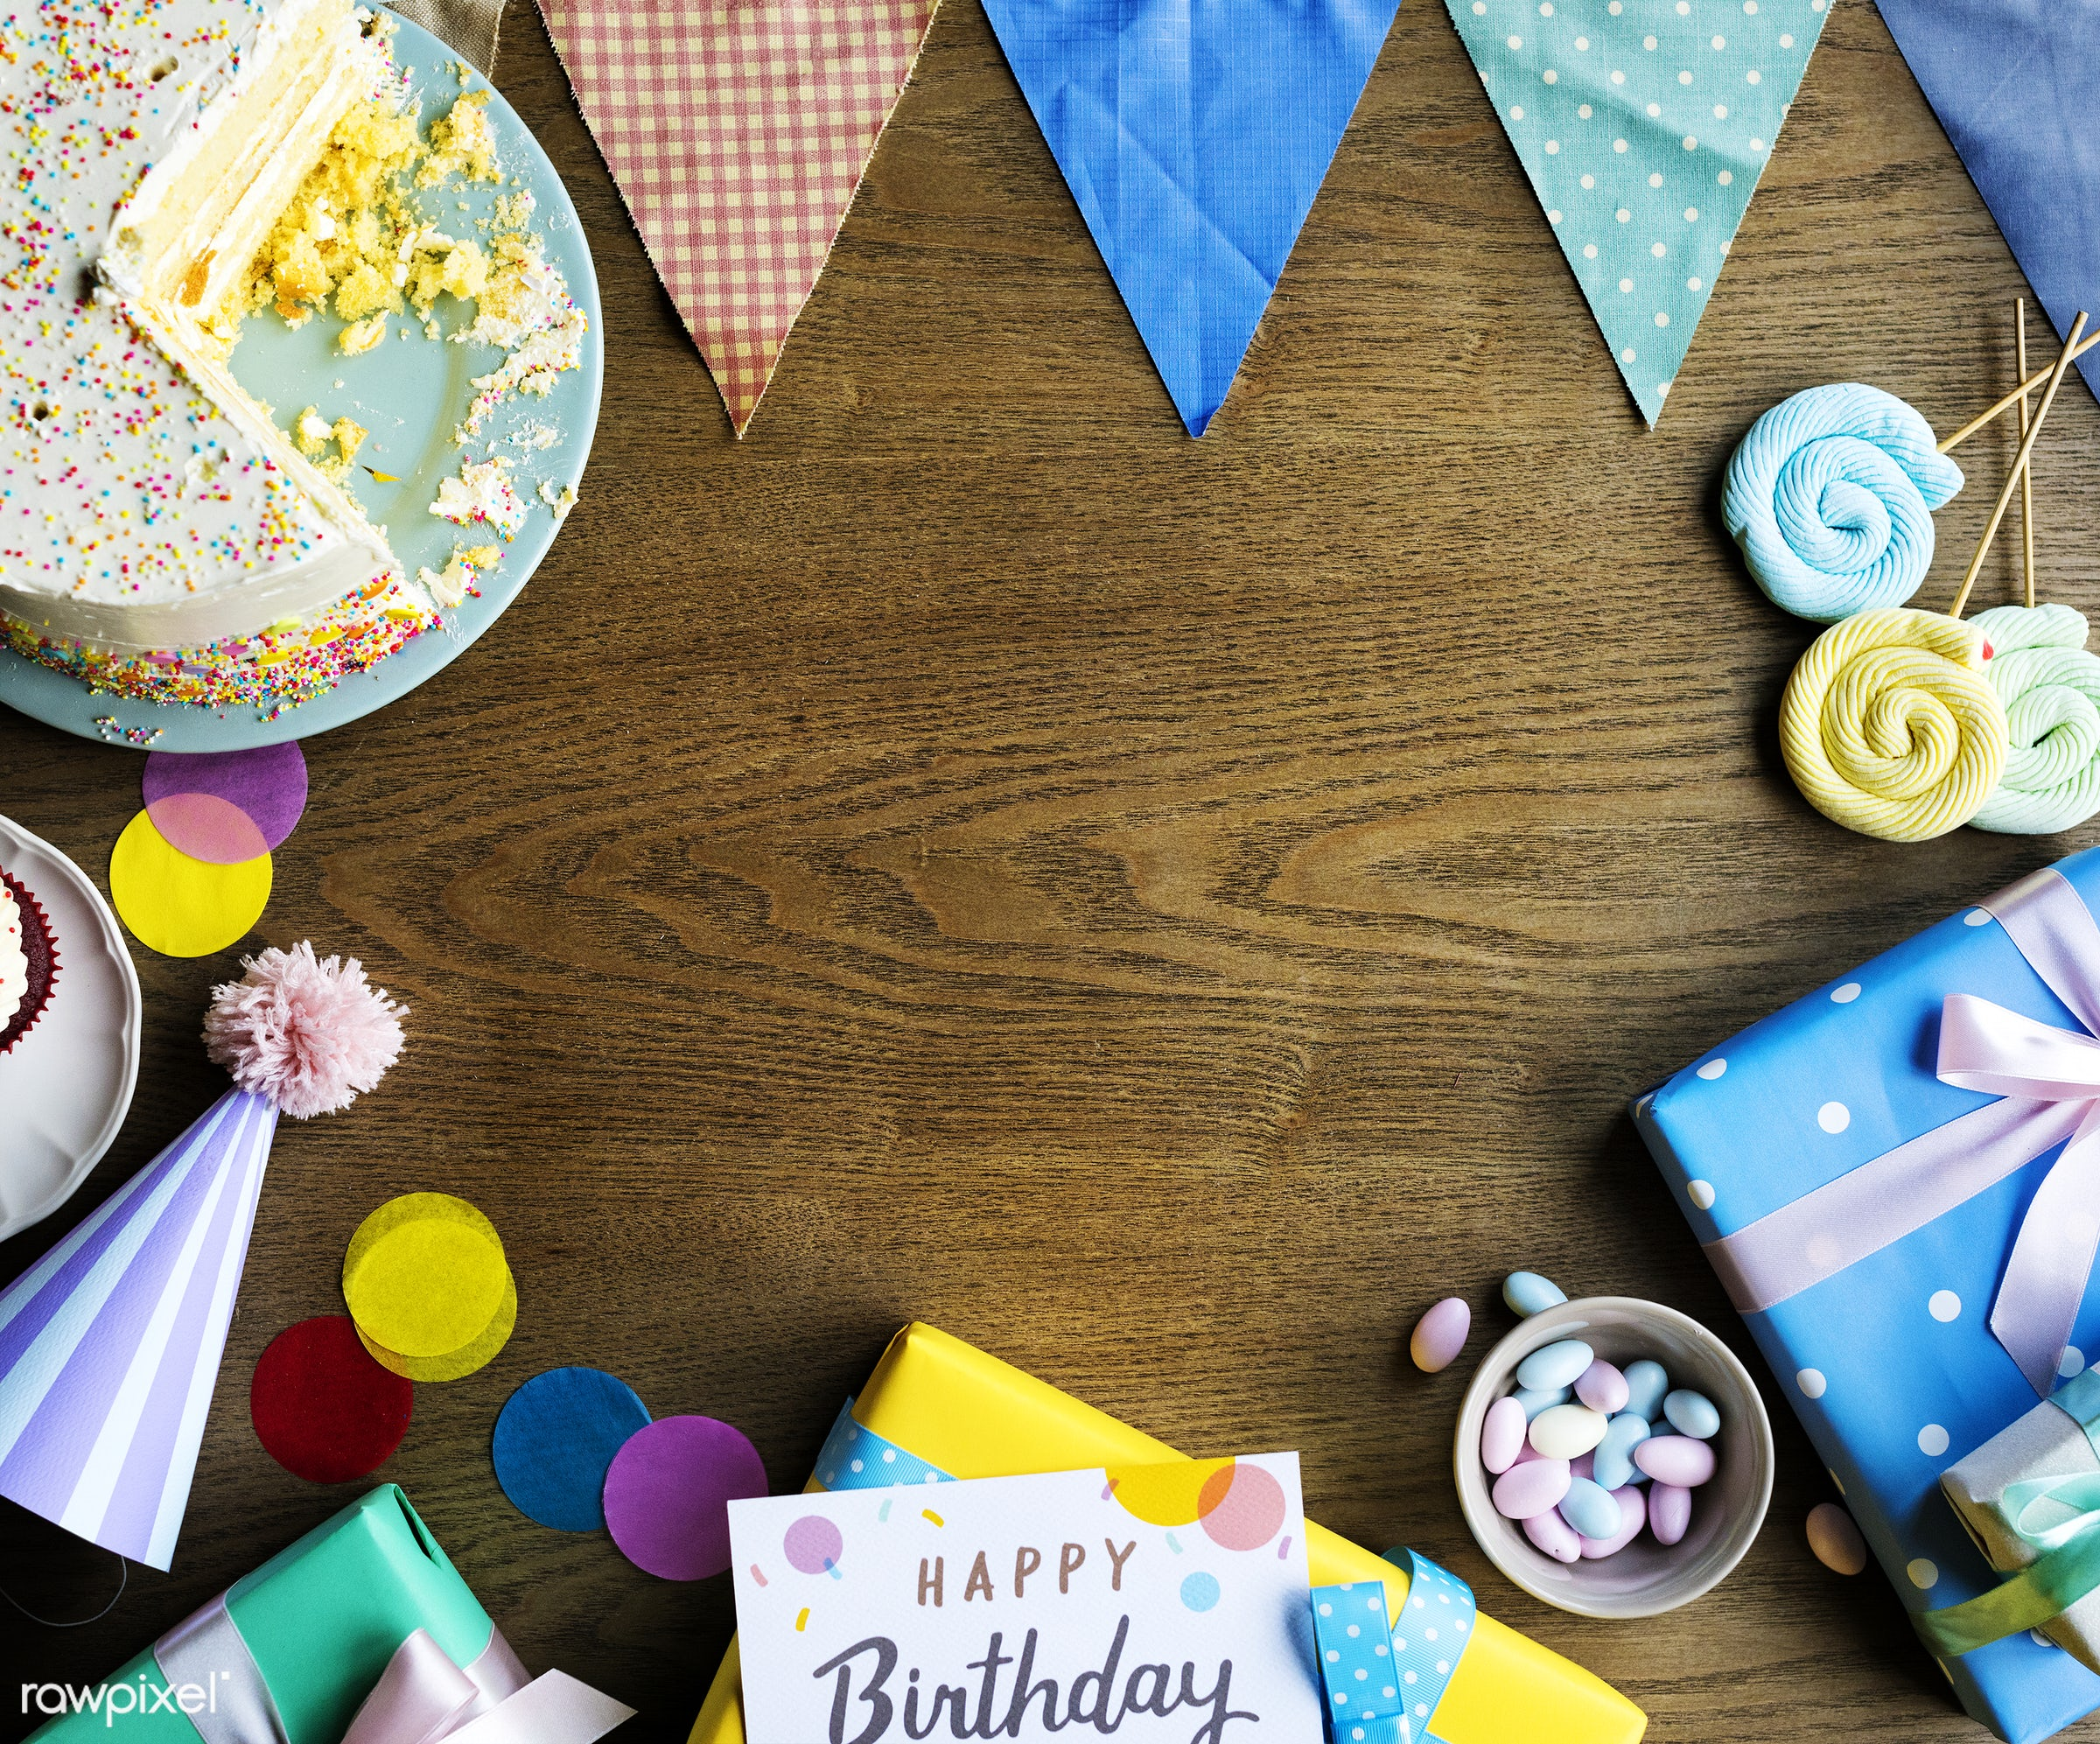 Birthday Celebration with Cake Presents Card Copy Space - birthday, nobody, copy space, gift, relax, occasion, show, party,...